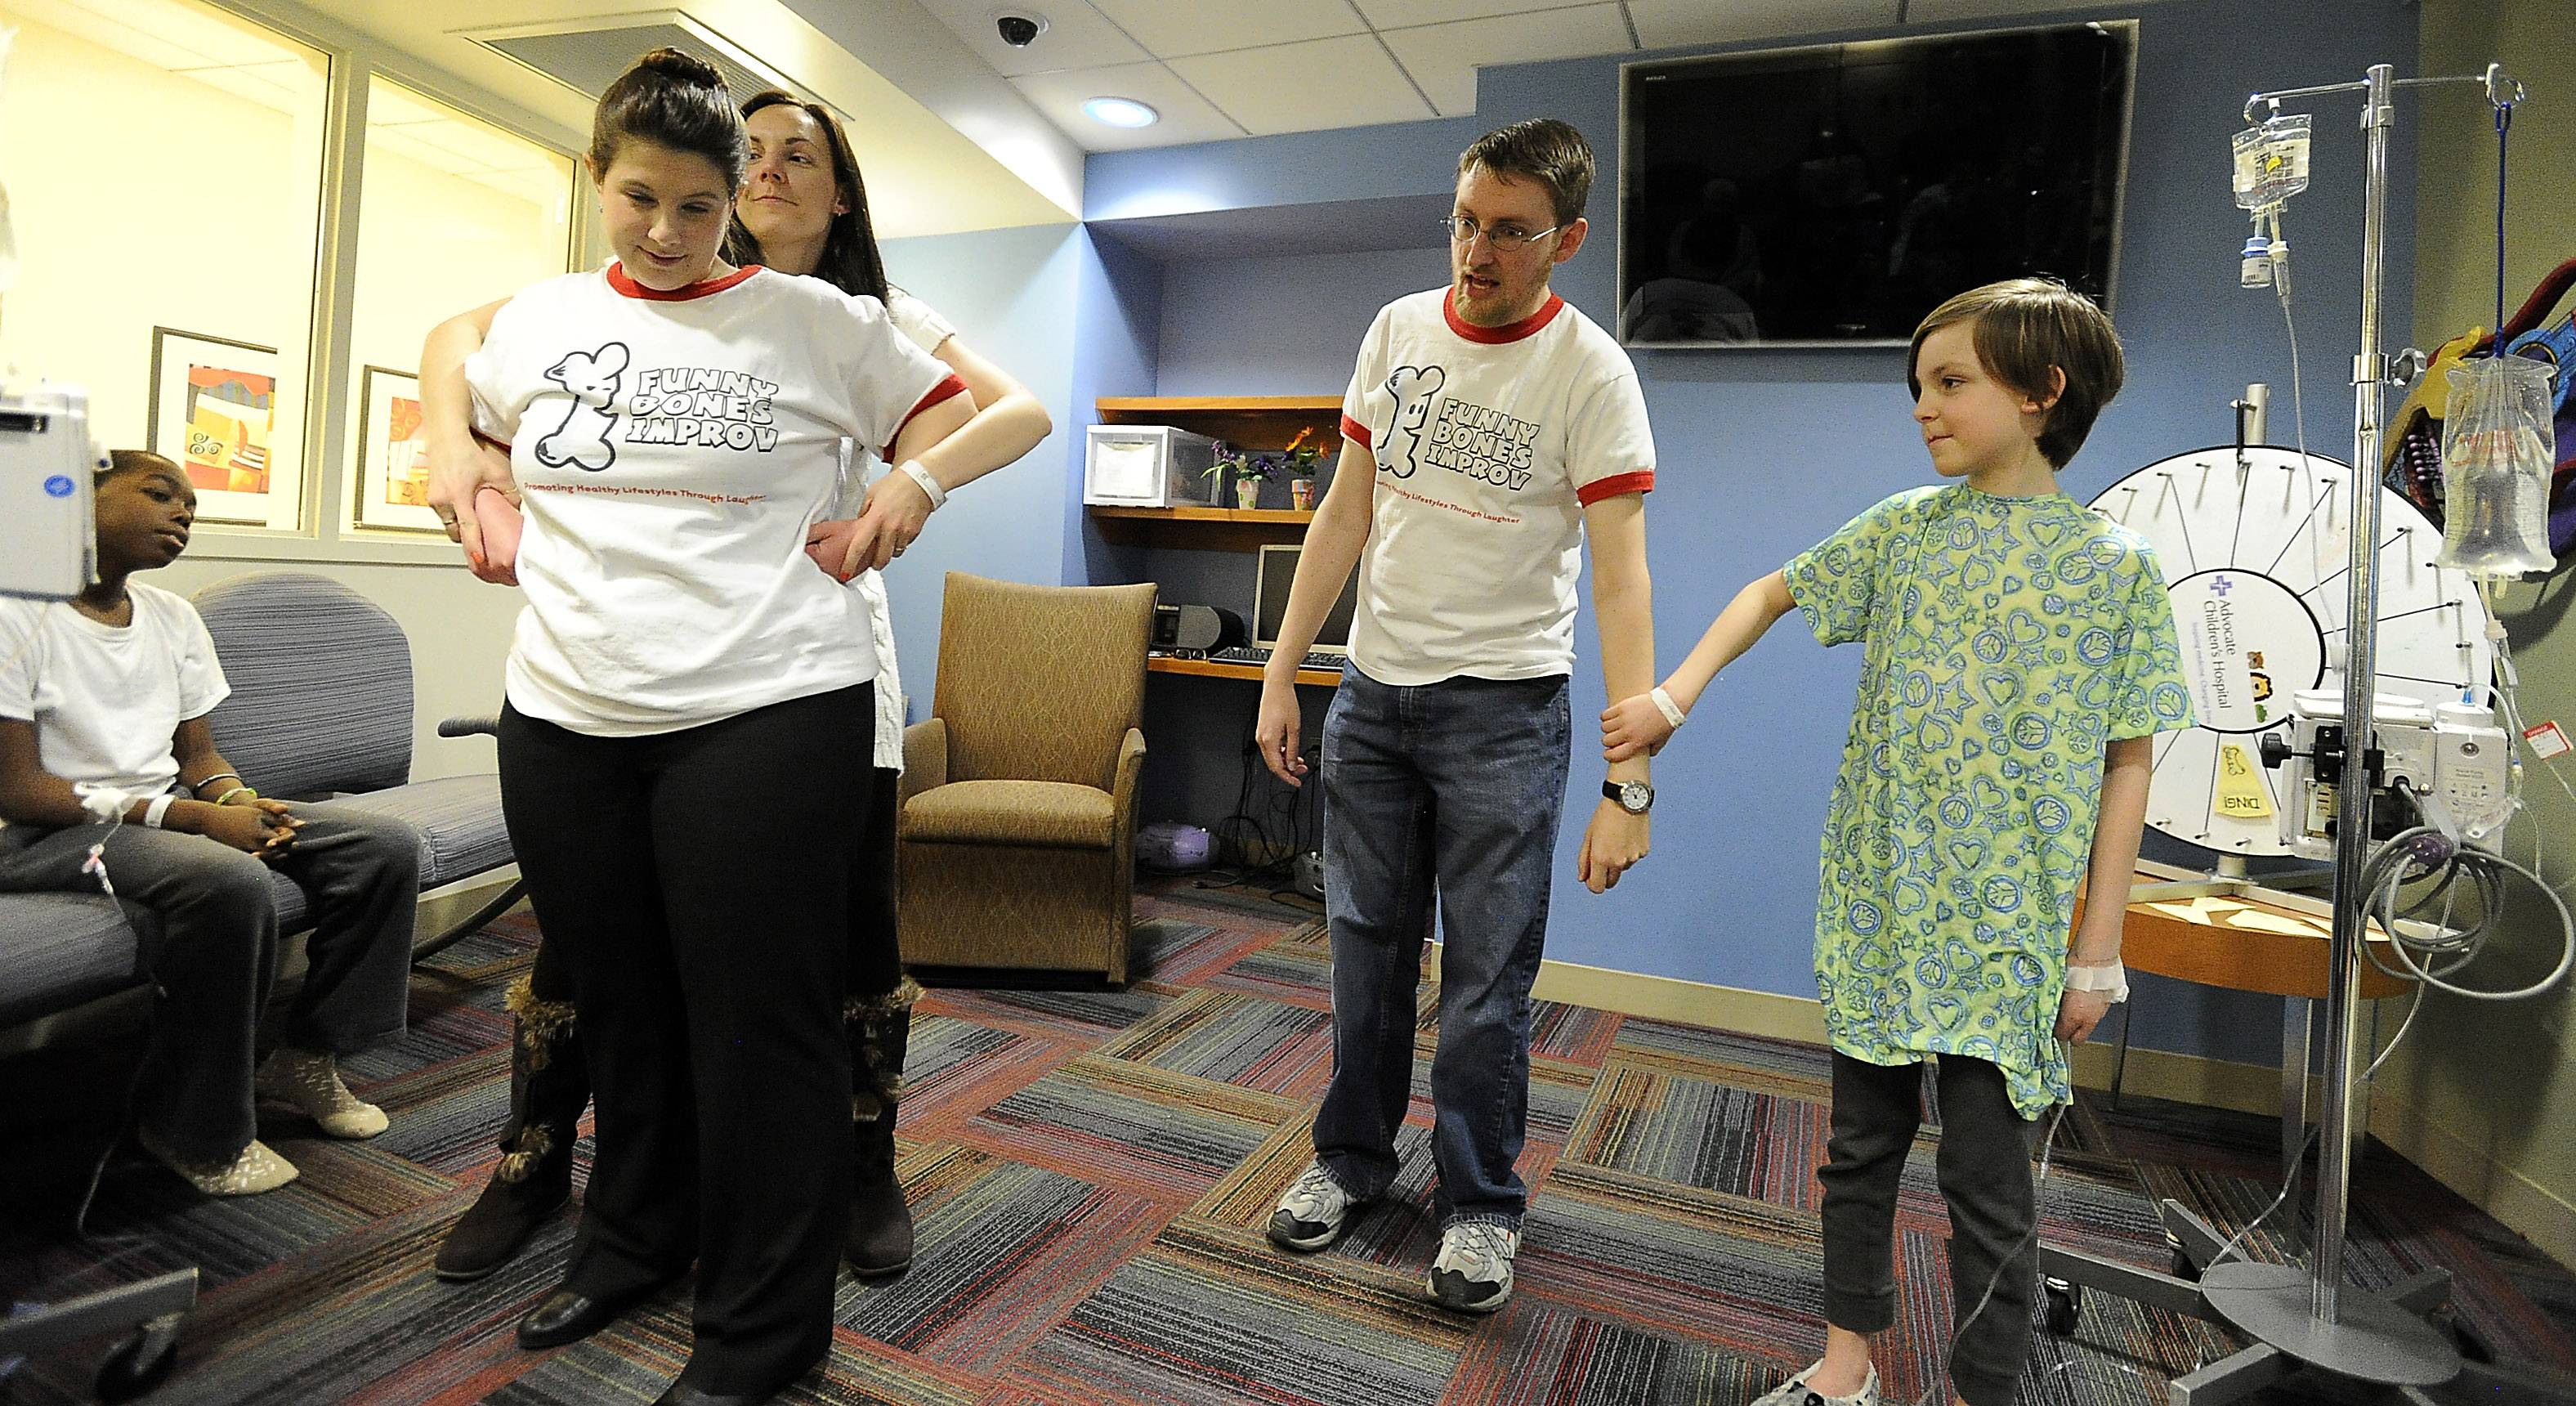 Feeling well enough to become part of the show, Luke Wickman, 9, and his mom, Carolina, work with Funny Bones Improv actors Stuart Allard of Downers Grove and Debbie Schreiner of Mount Prospect.